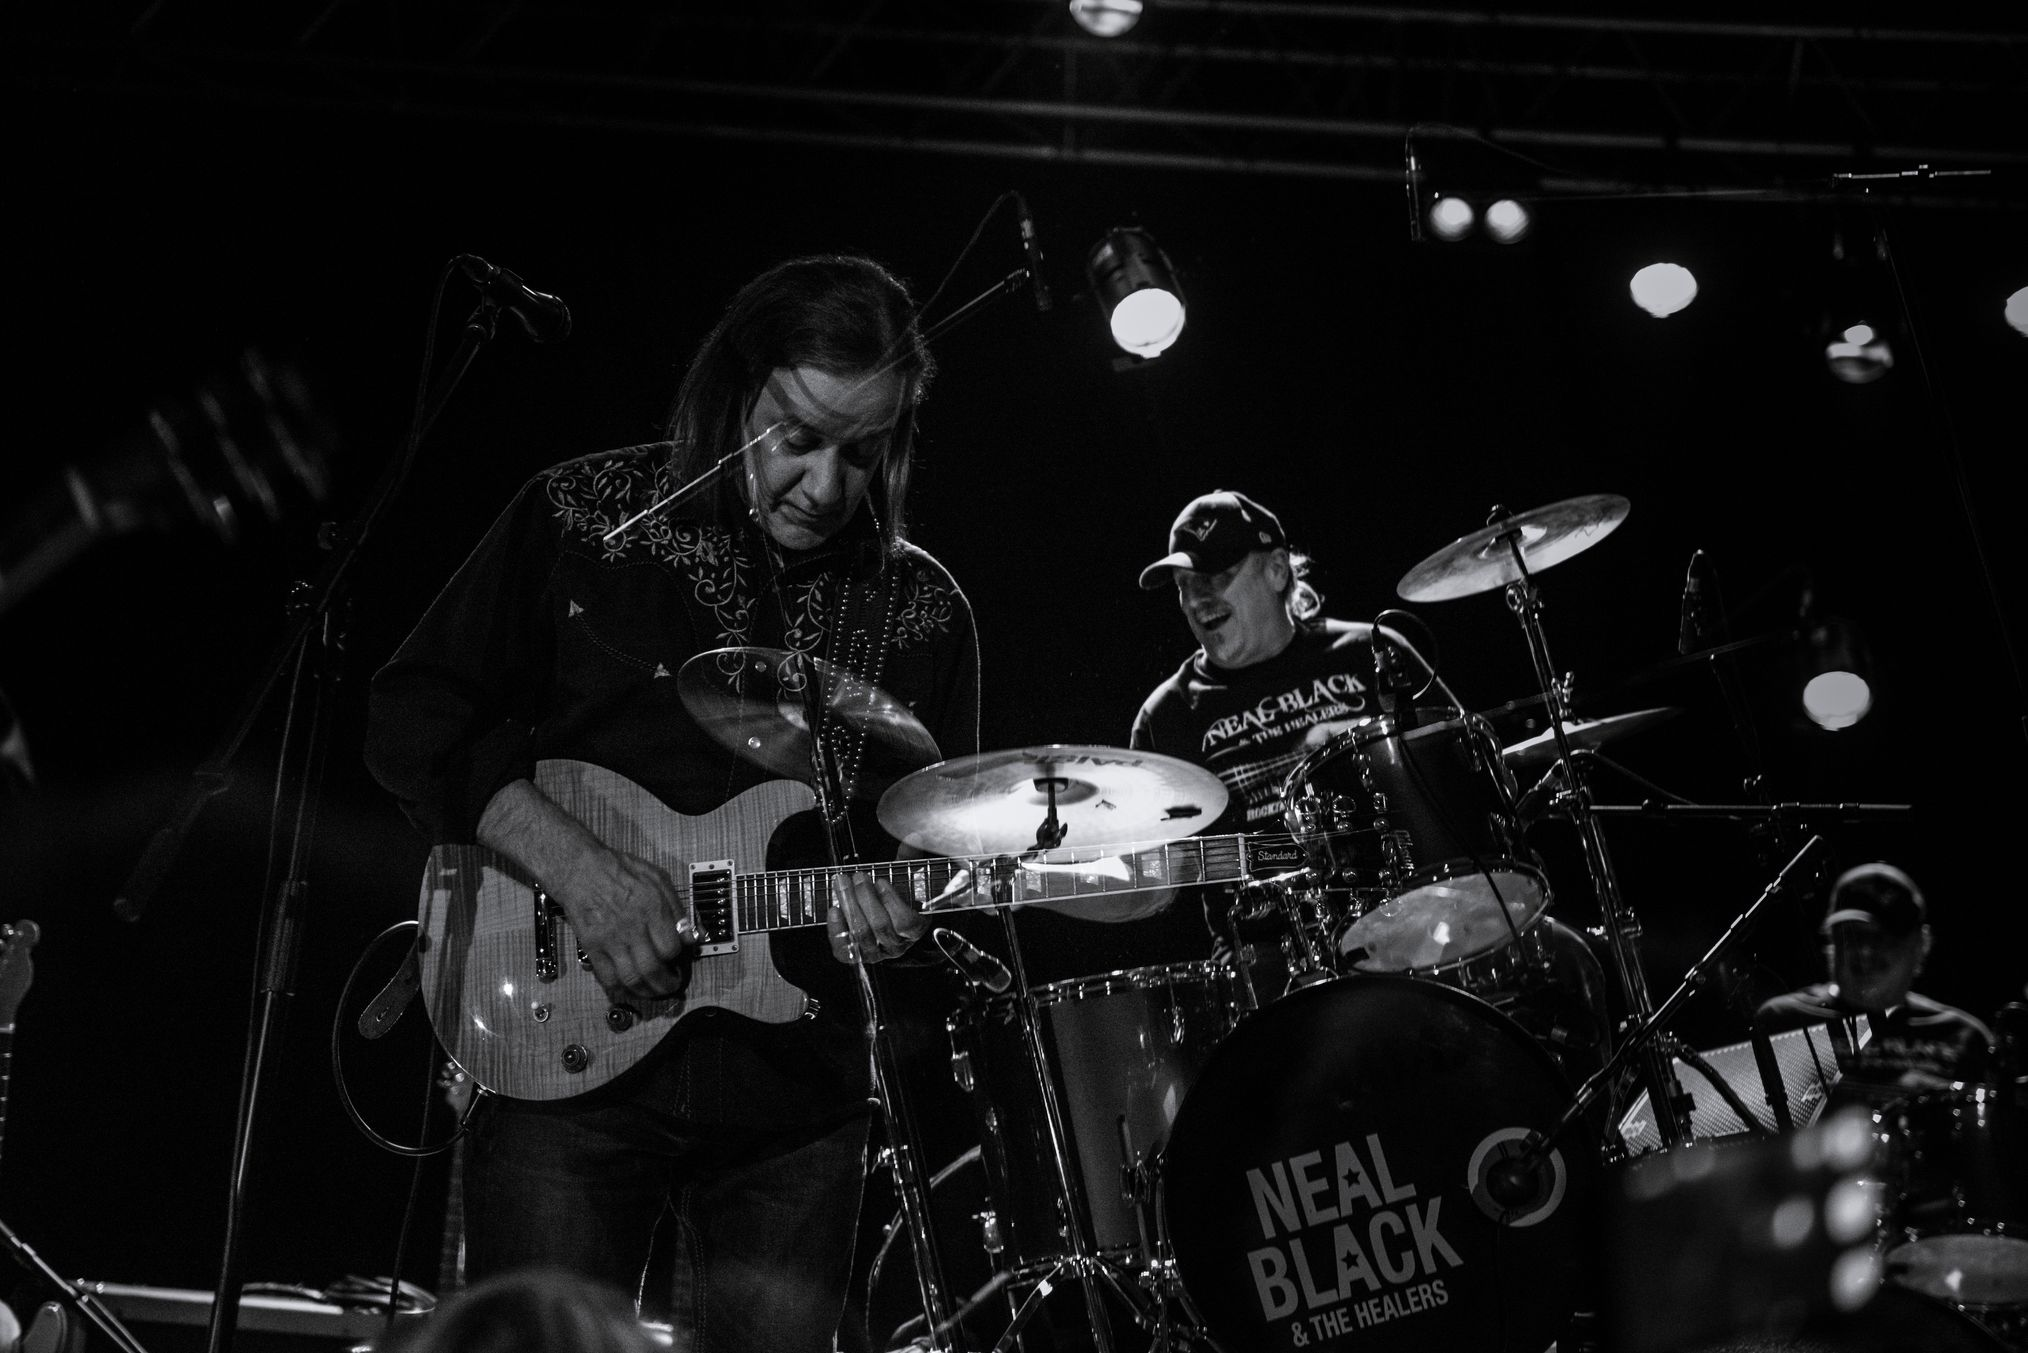 2018-02-02_-_concert_neal_black_the_healers_6_.jpg